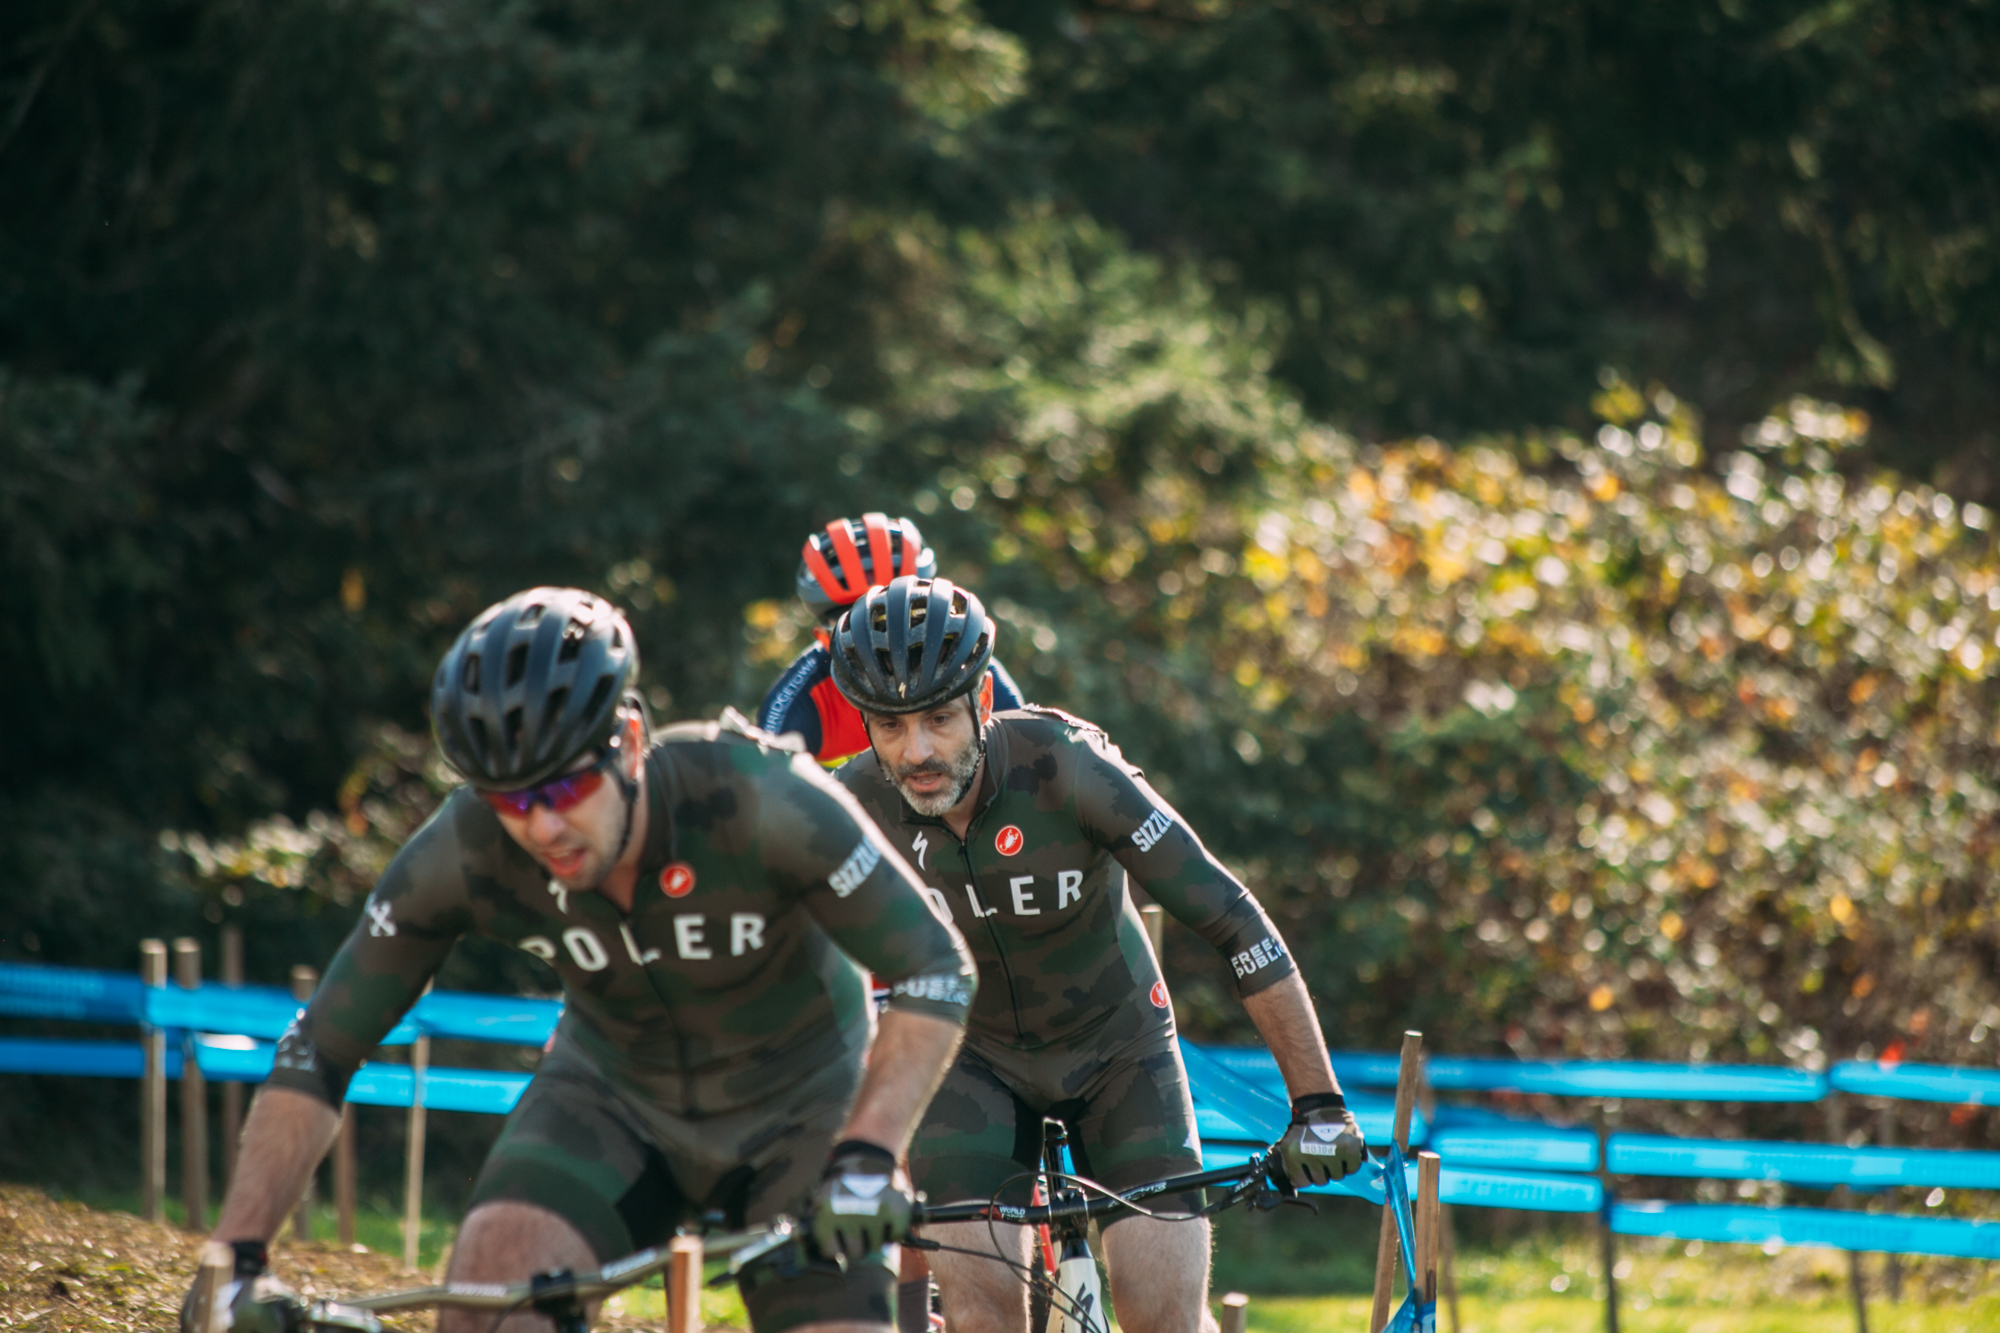 Cyclocross18_CCCX_RainierHS-100-mettlecycling.jpg